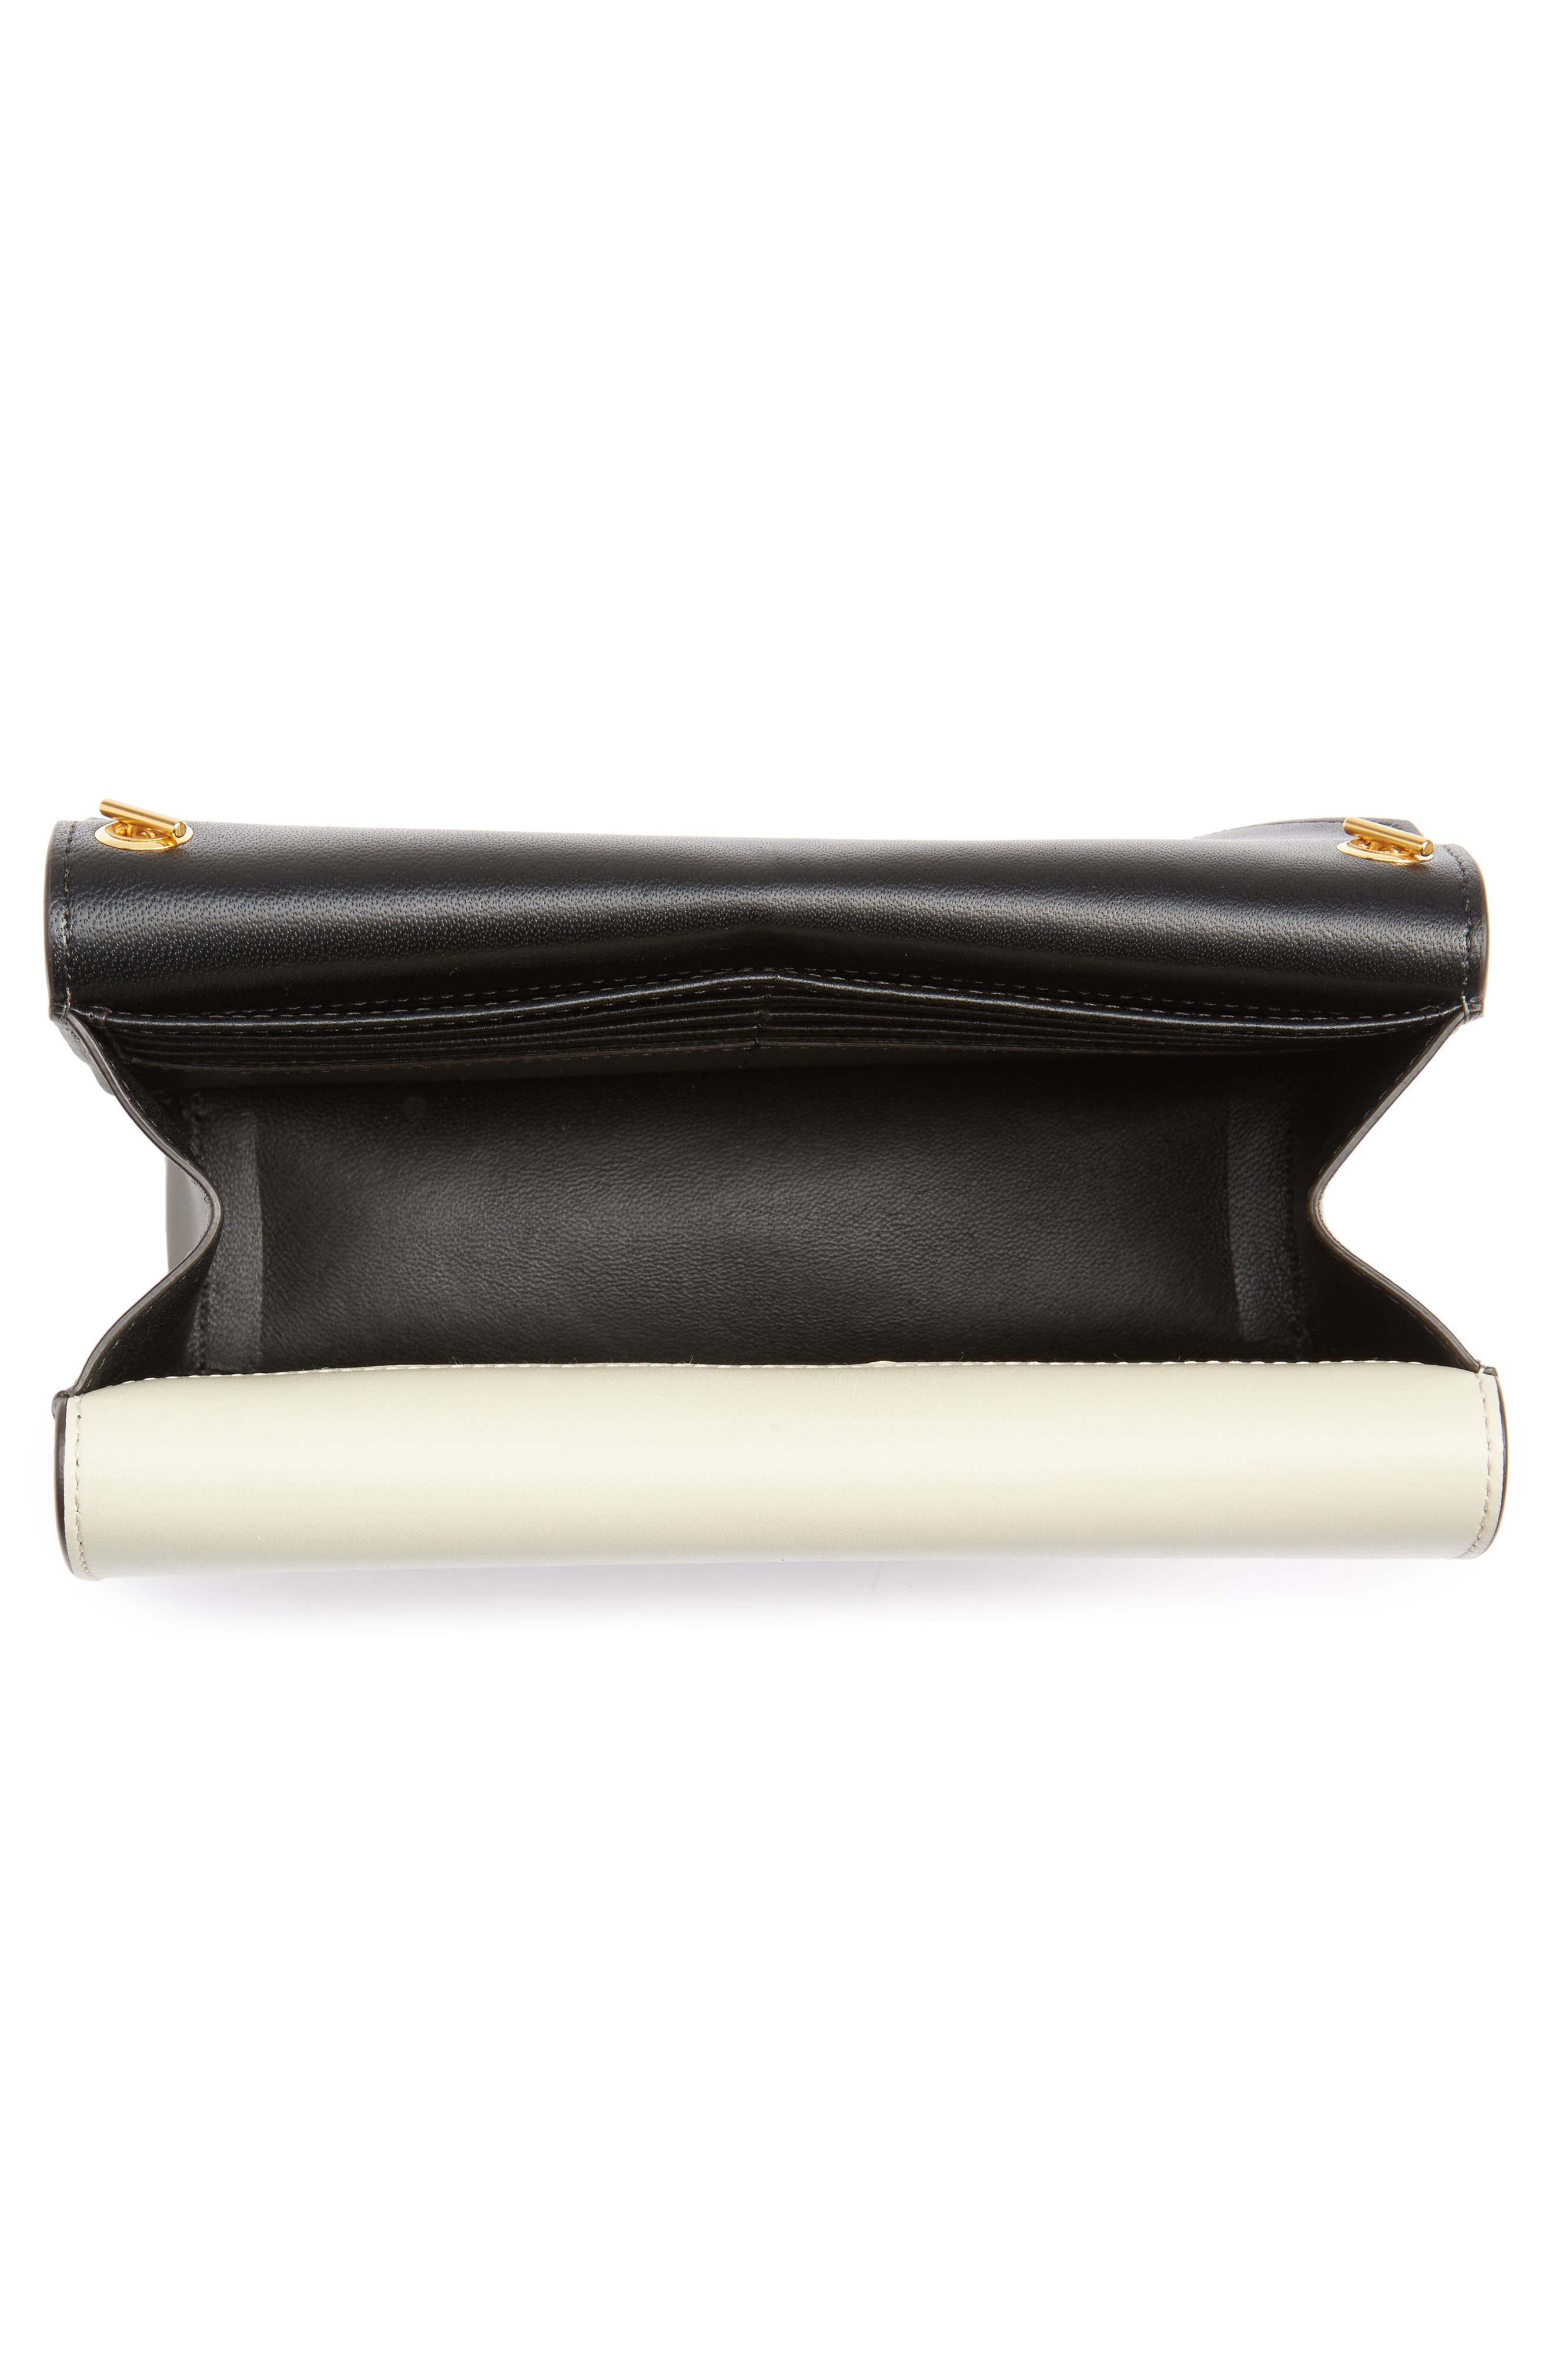 Multiflap Calfskin Leather Clutch,                             Alternate thumbnail 8, color,